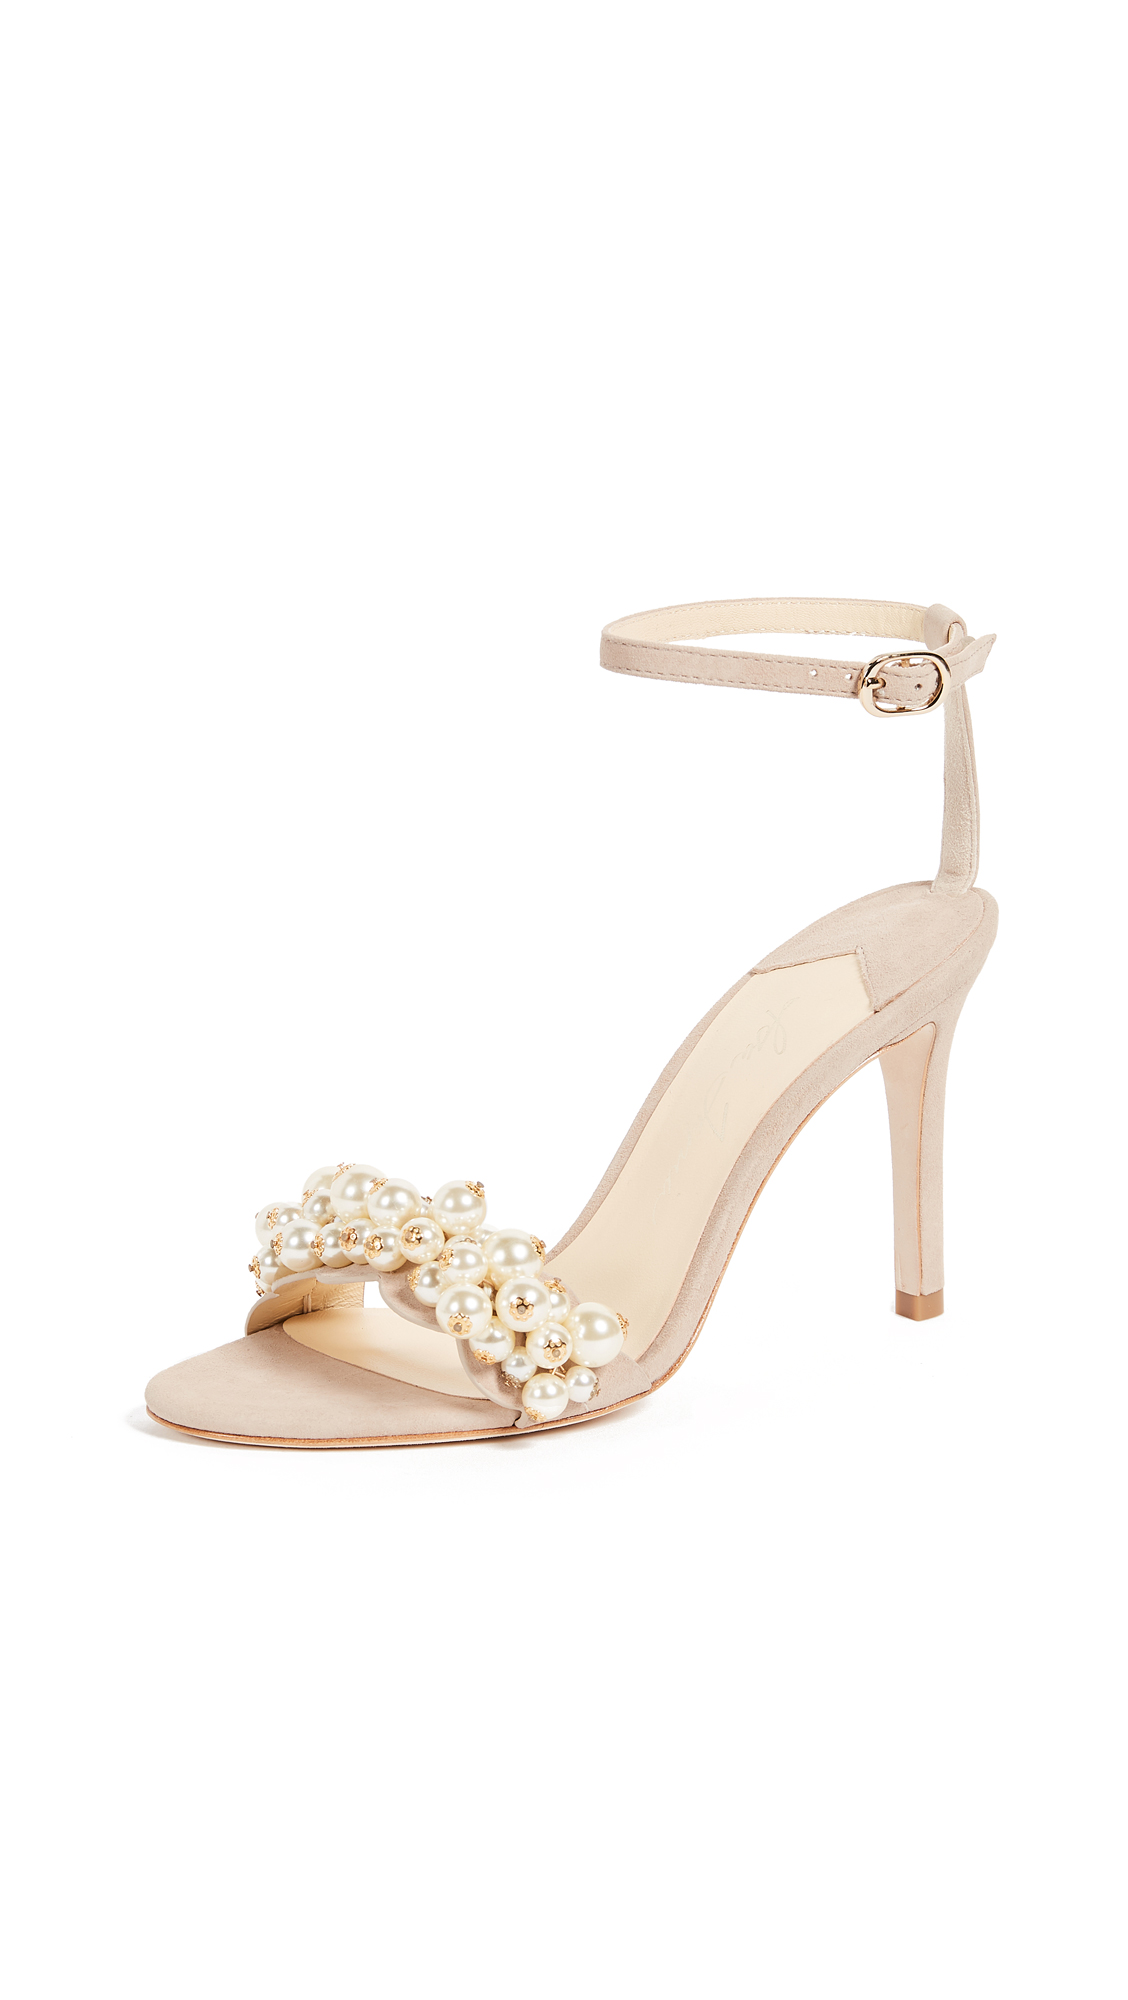 Isa Tapia Eliana Ankle Strap Pumps - Sand